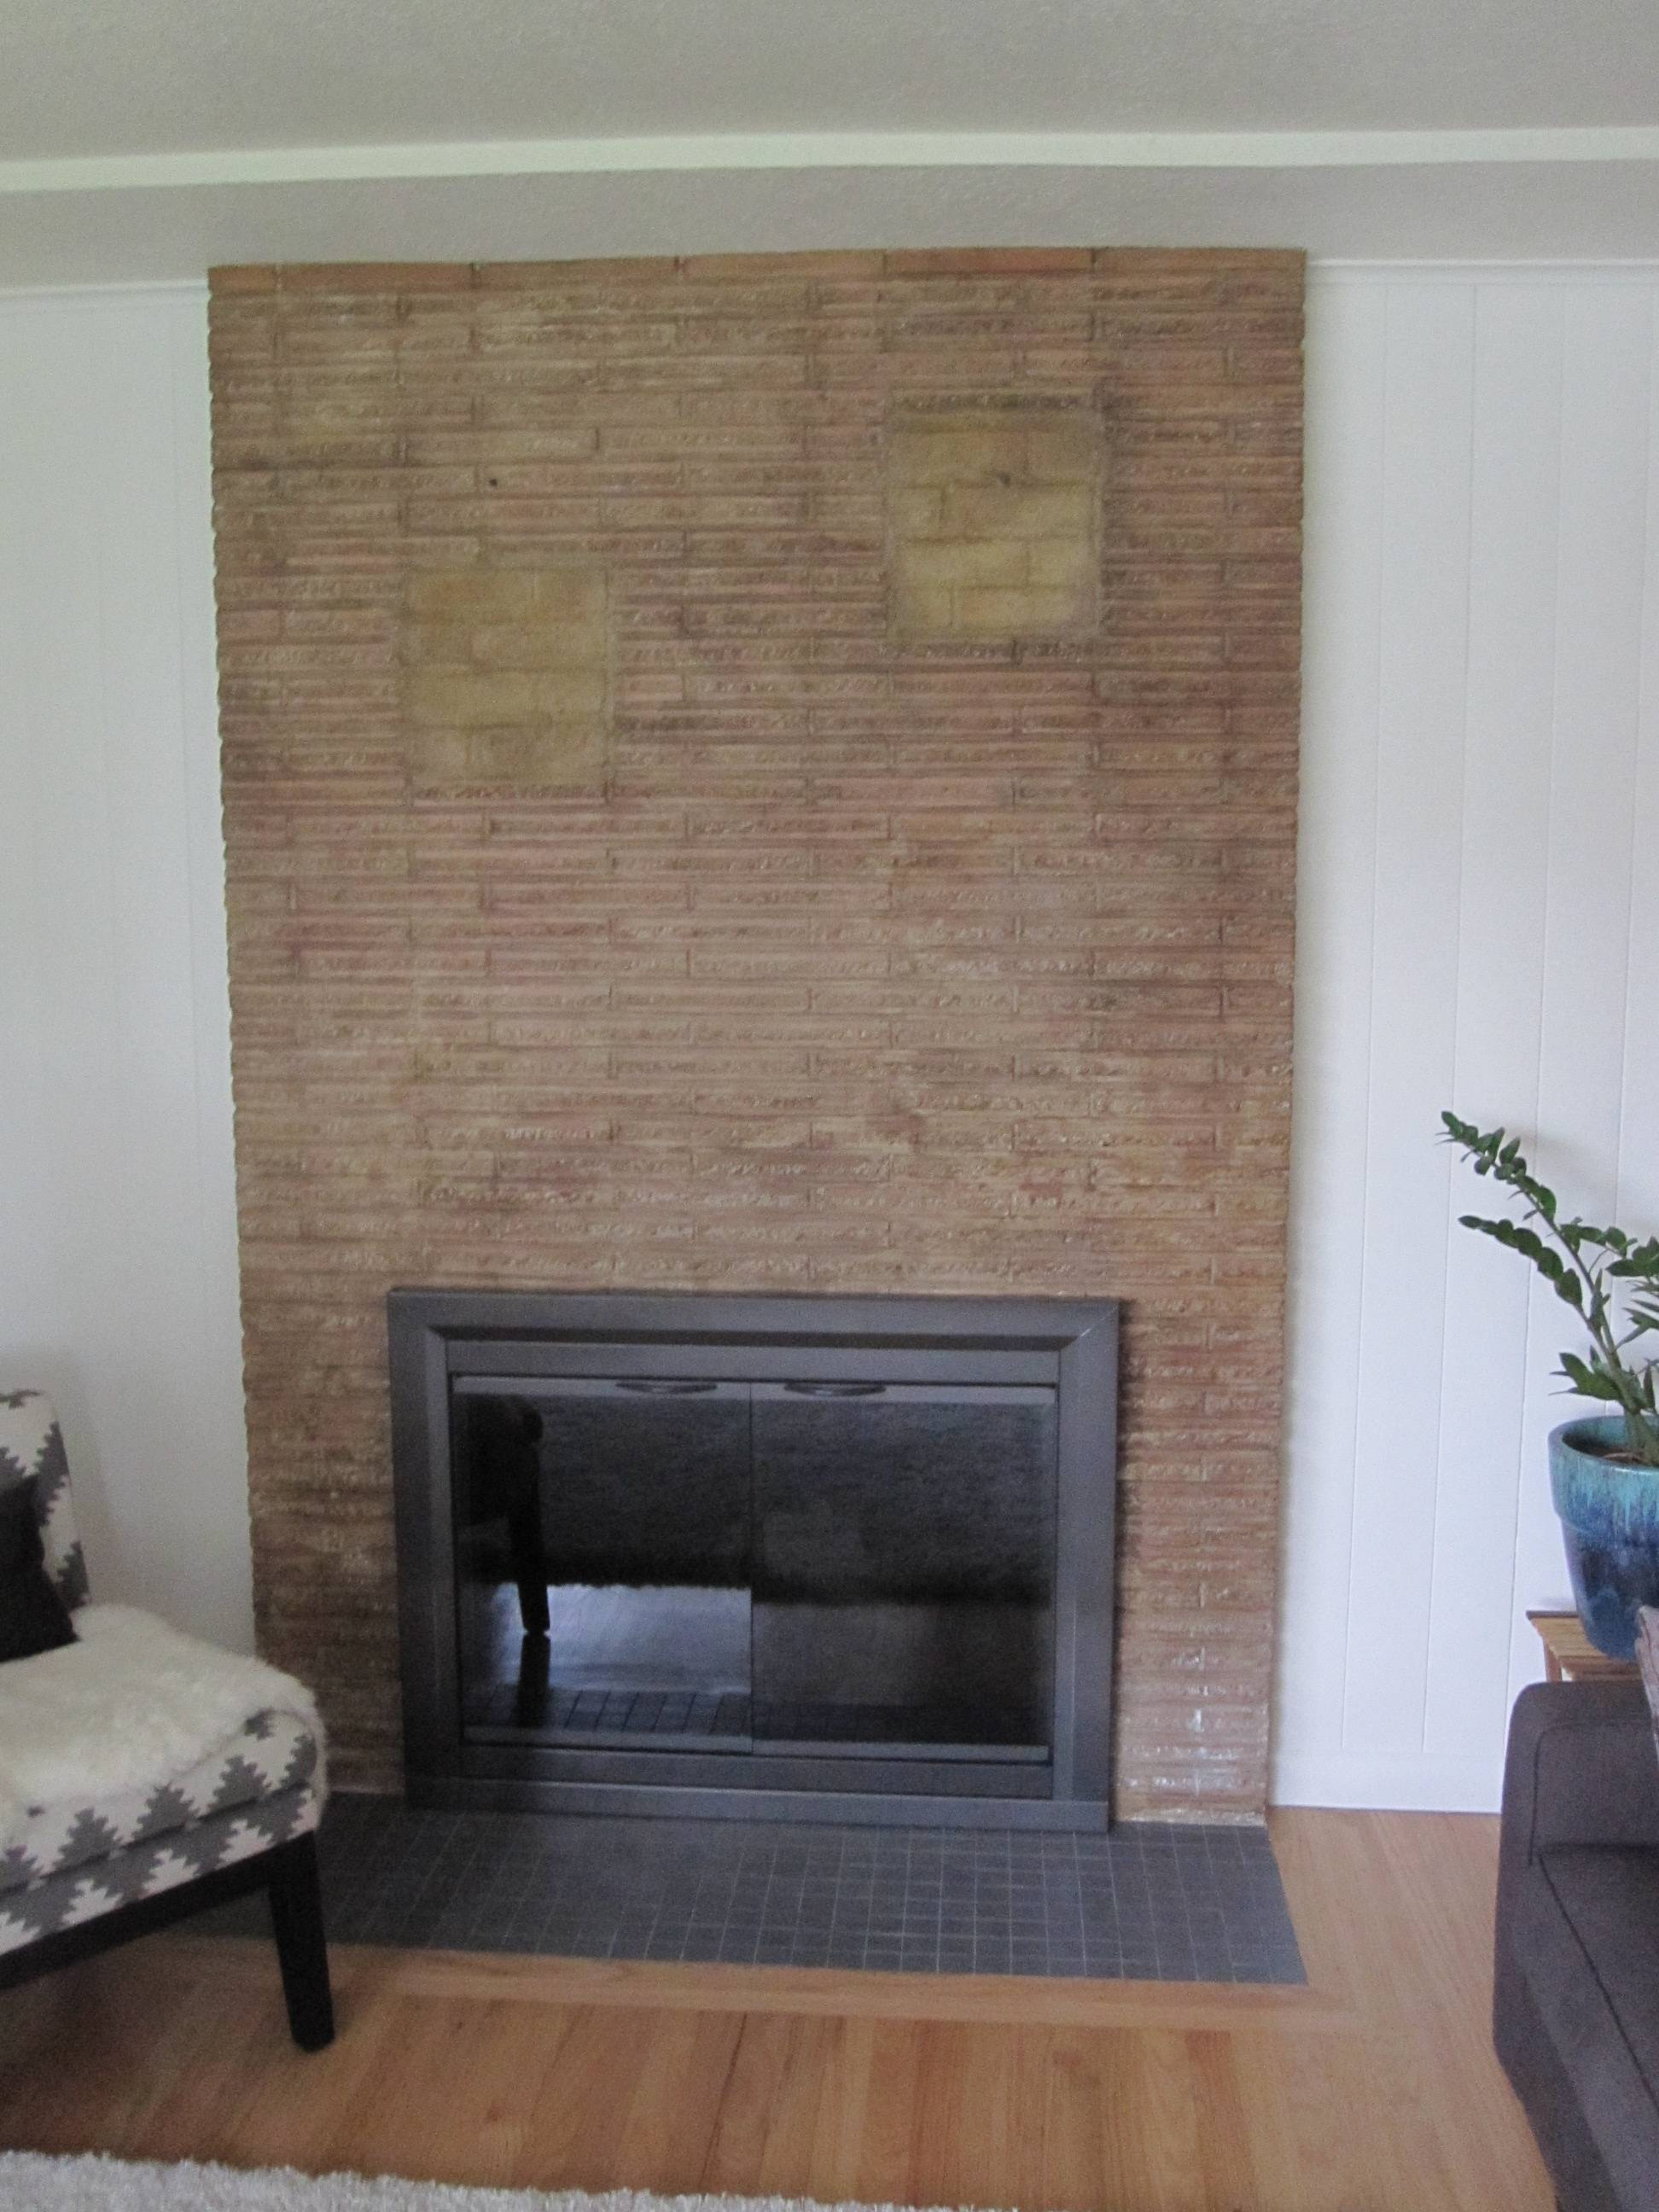 Previous Owner Filled In Fireplace Shelves With Incorrect Brick Can